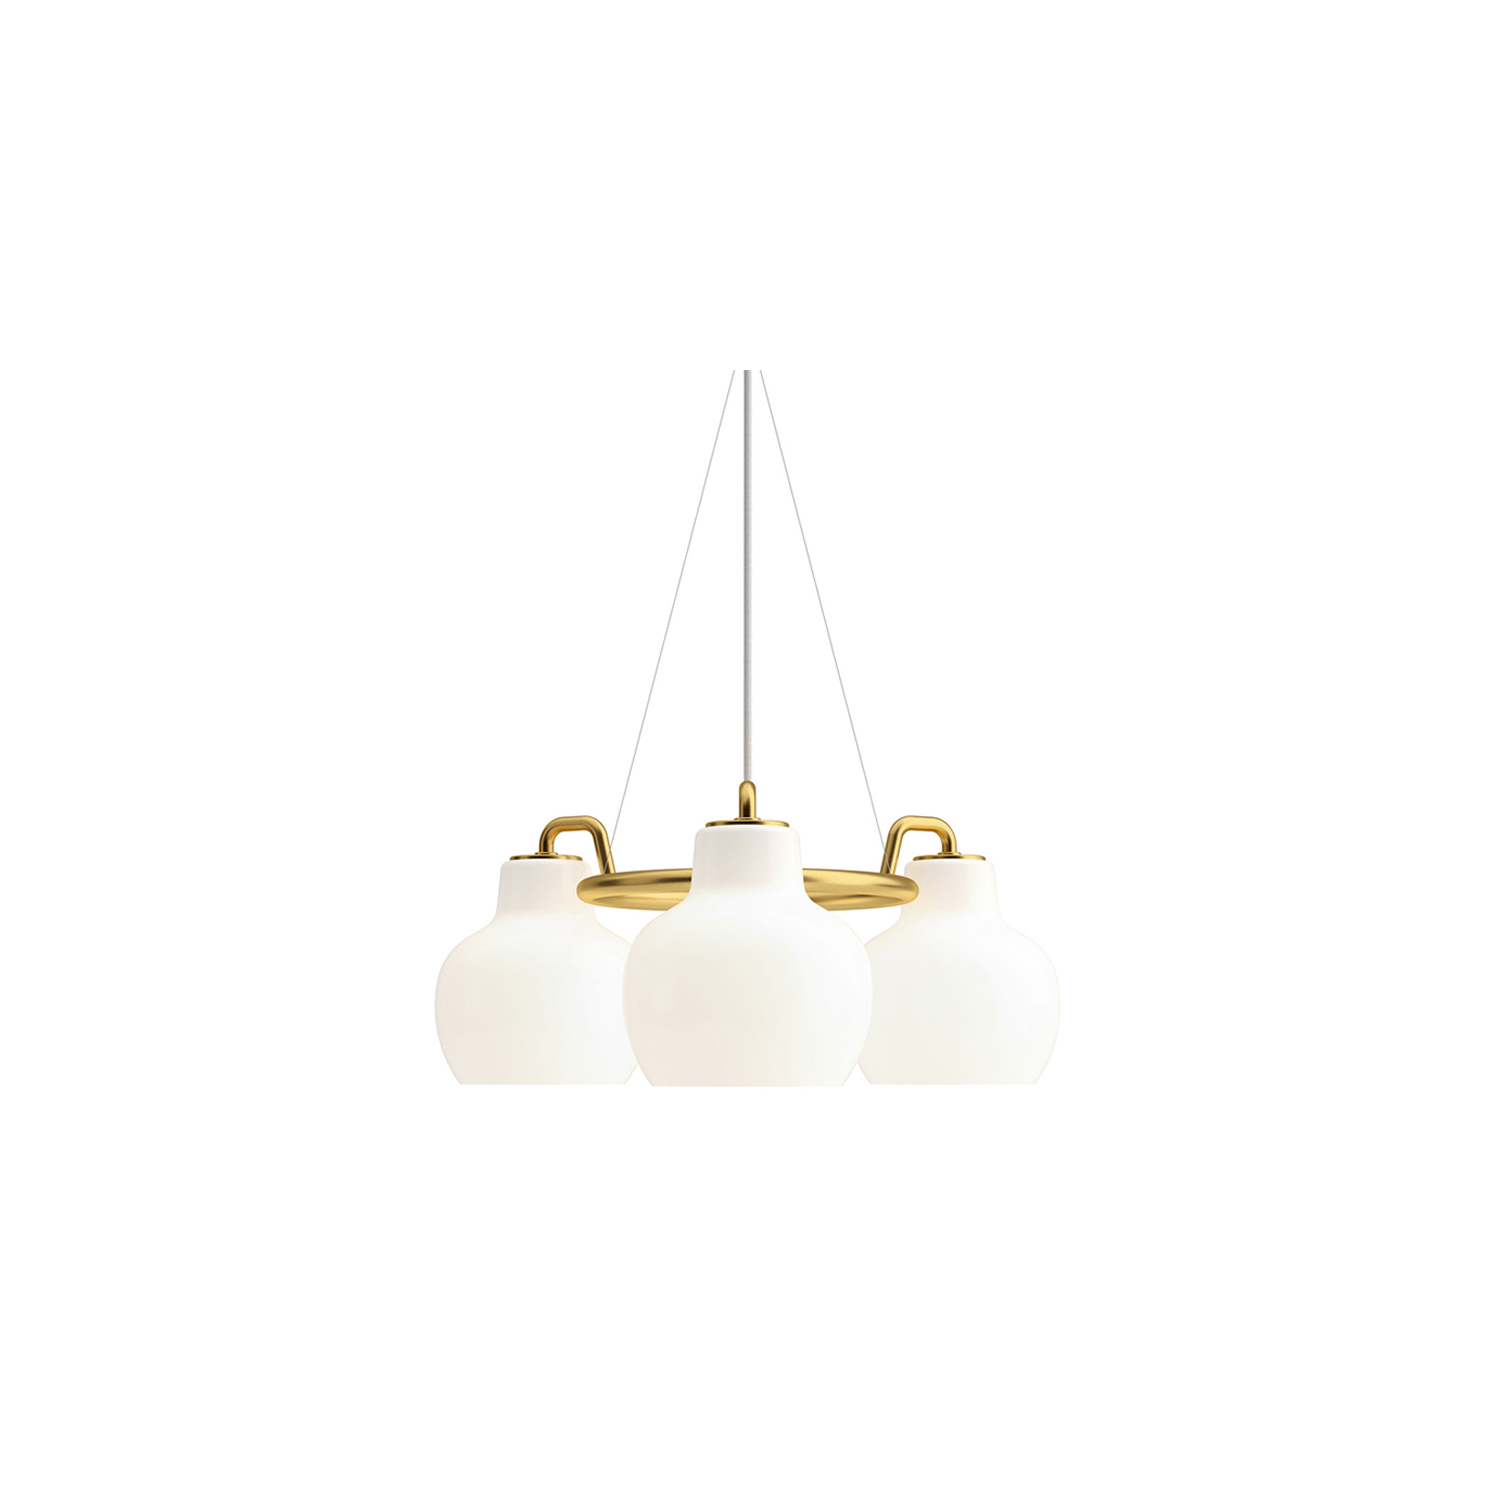 VL Ring Crown 3-5-7 Pendant Light - The pendant emits light directed primarily downwards. The opal glass provides a comfortable and uniform illumination of the area around the fixture.   | Matter of Stuff